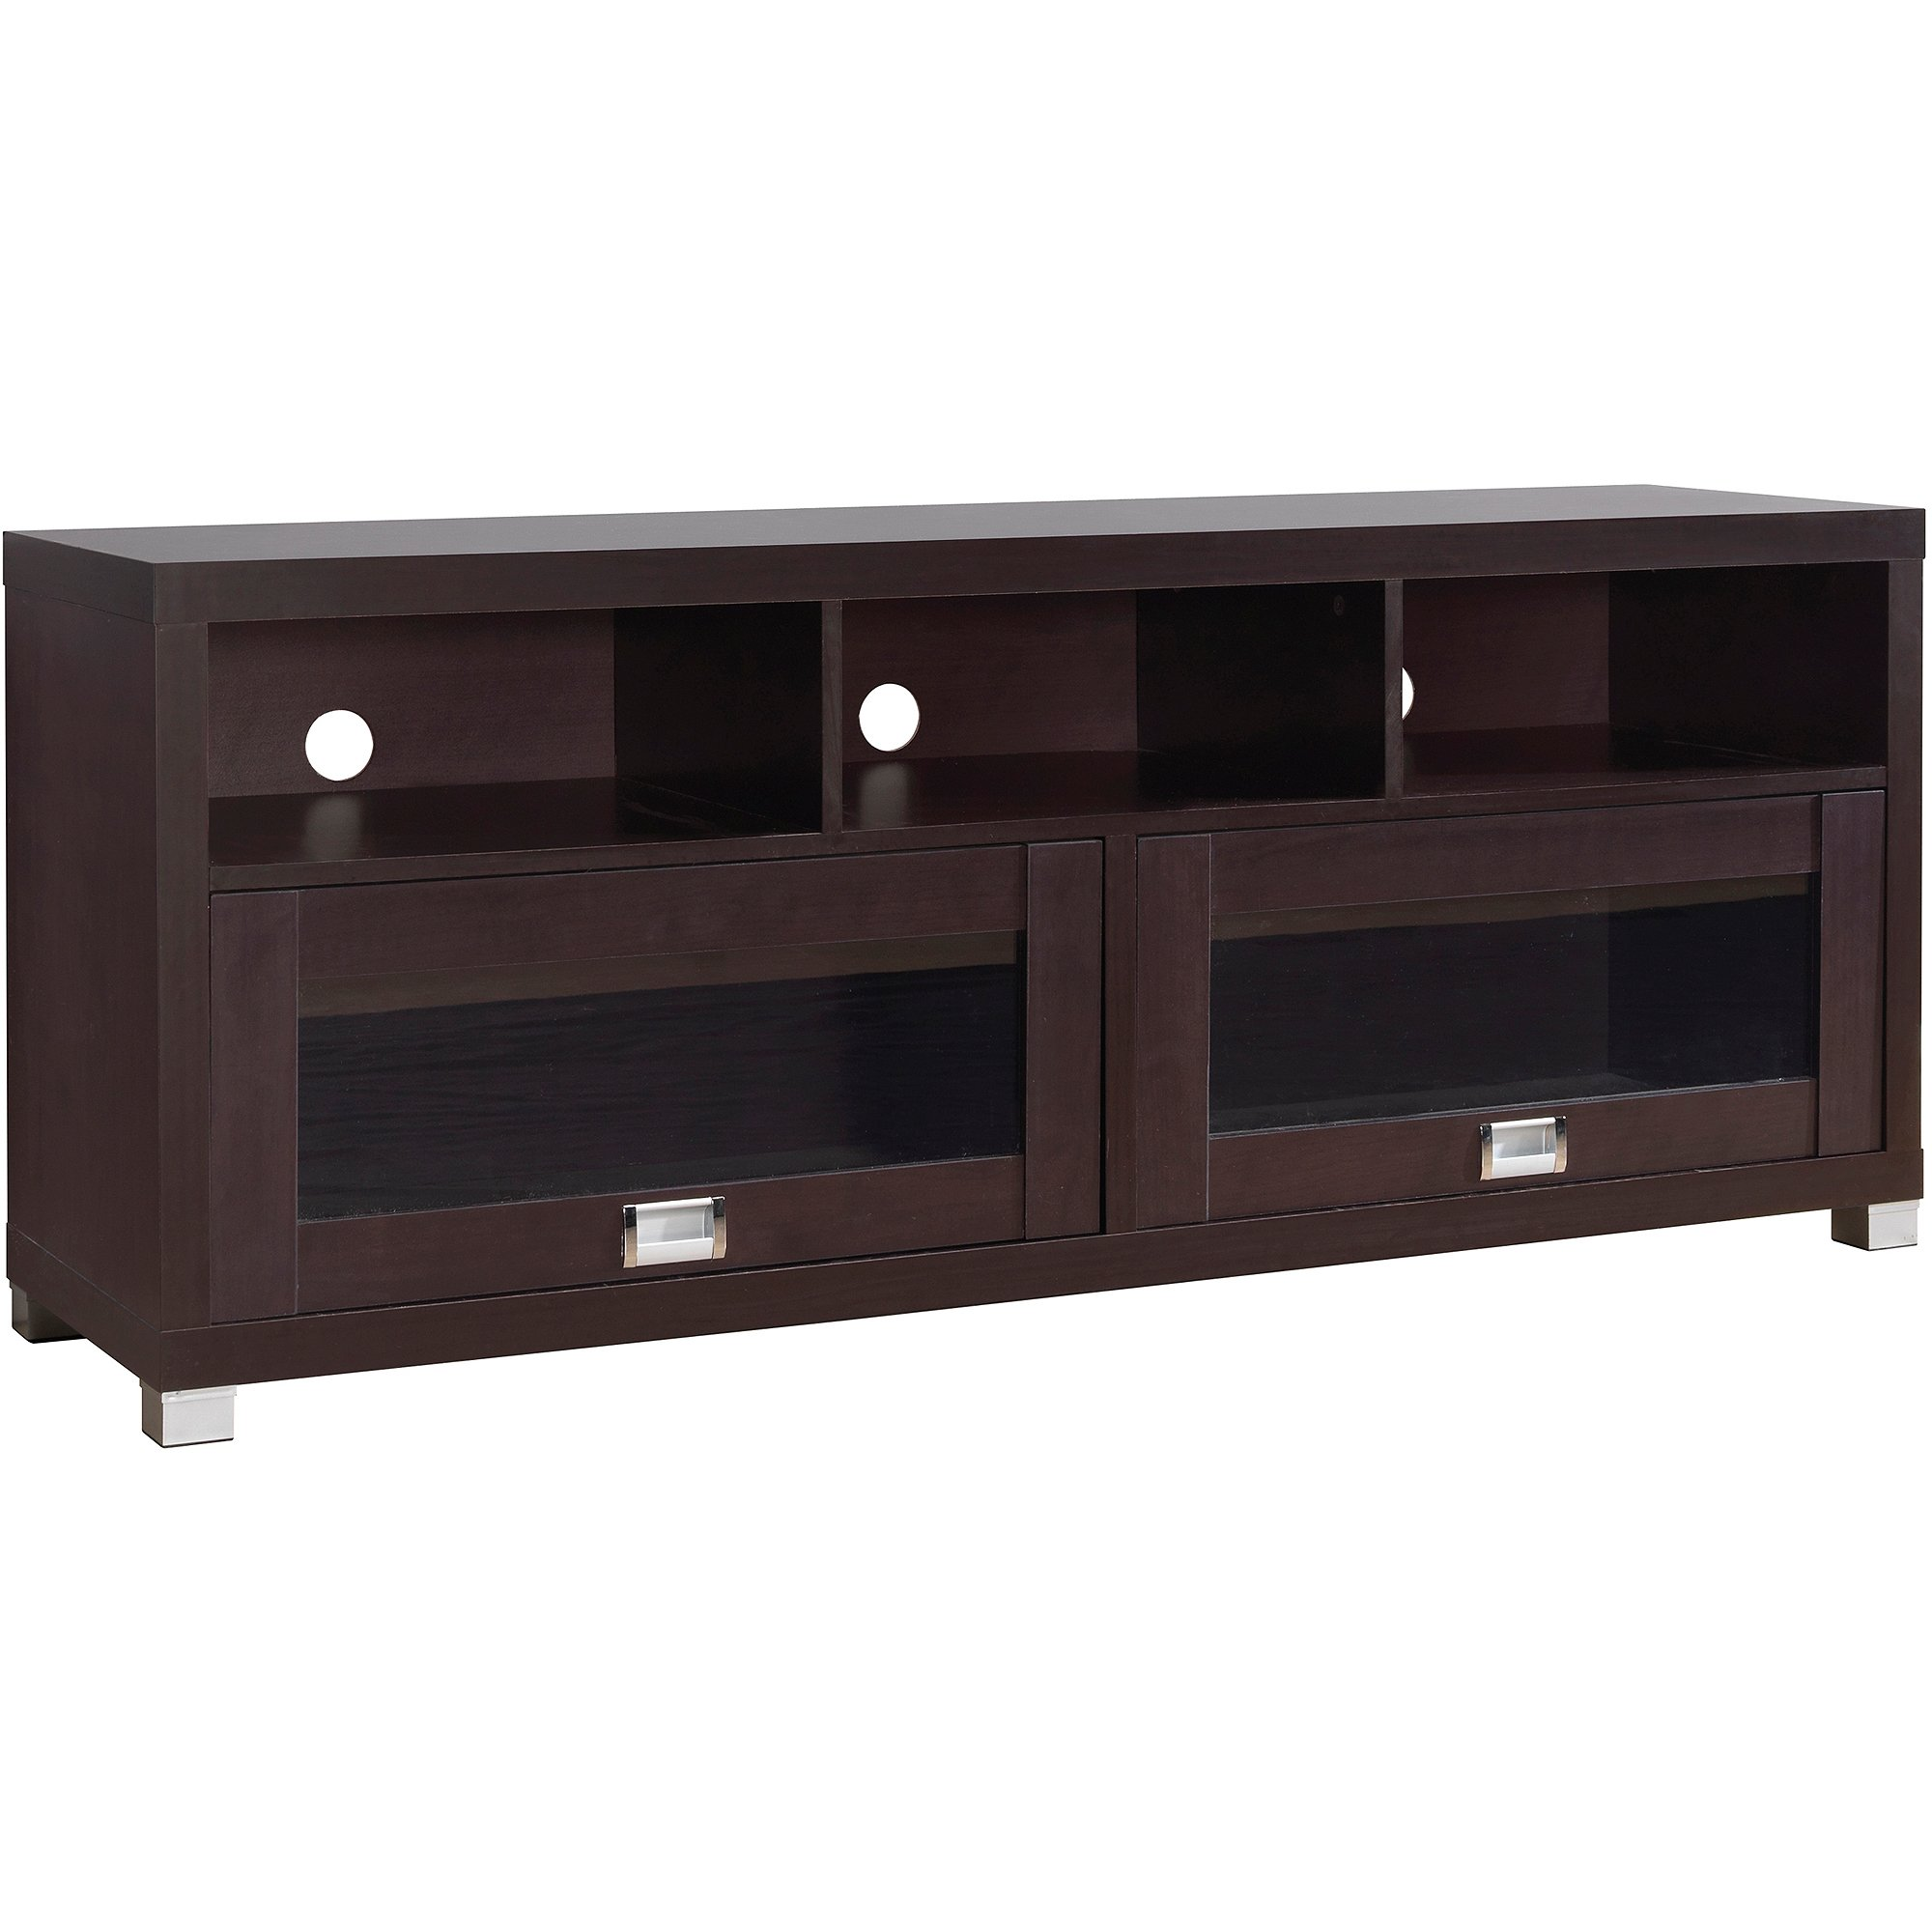 Espresso TV Cabinet for TVs up to 65 inches with 2 Glass Doors with Storage Space for Audio or Gaming Components & 3 Shelves, Living Room Furniture, Storage Cabinet, TV Stand, Entertainment Center